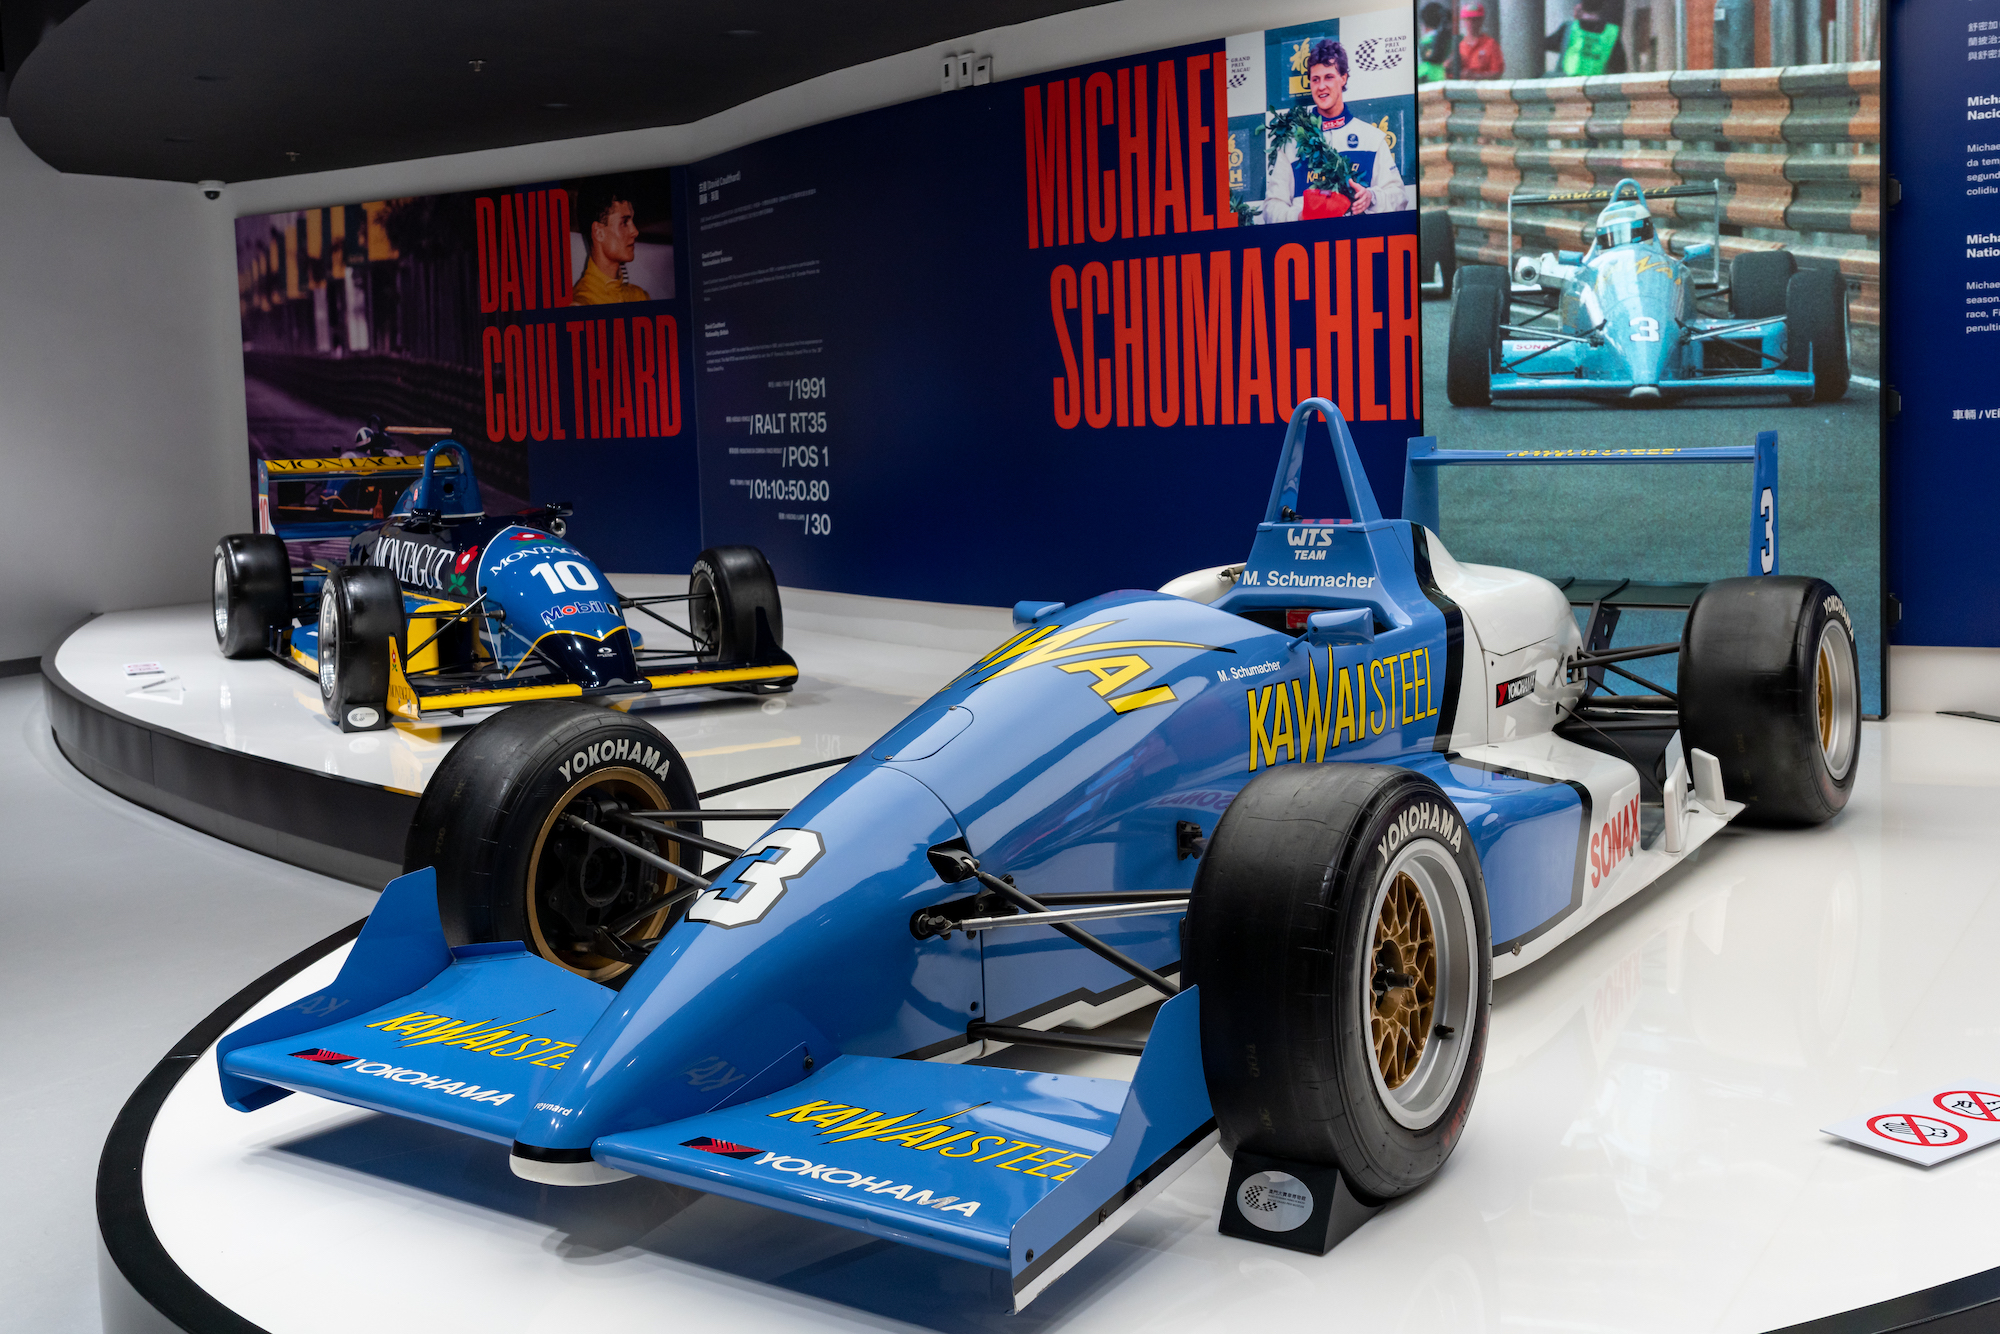 Michael Schumacher 903 that was raced with here at the Macao Grand Prix